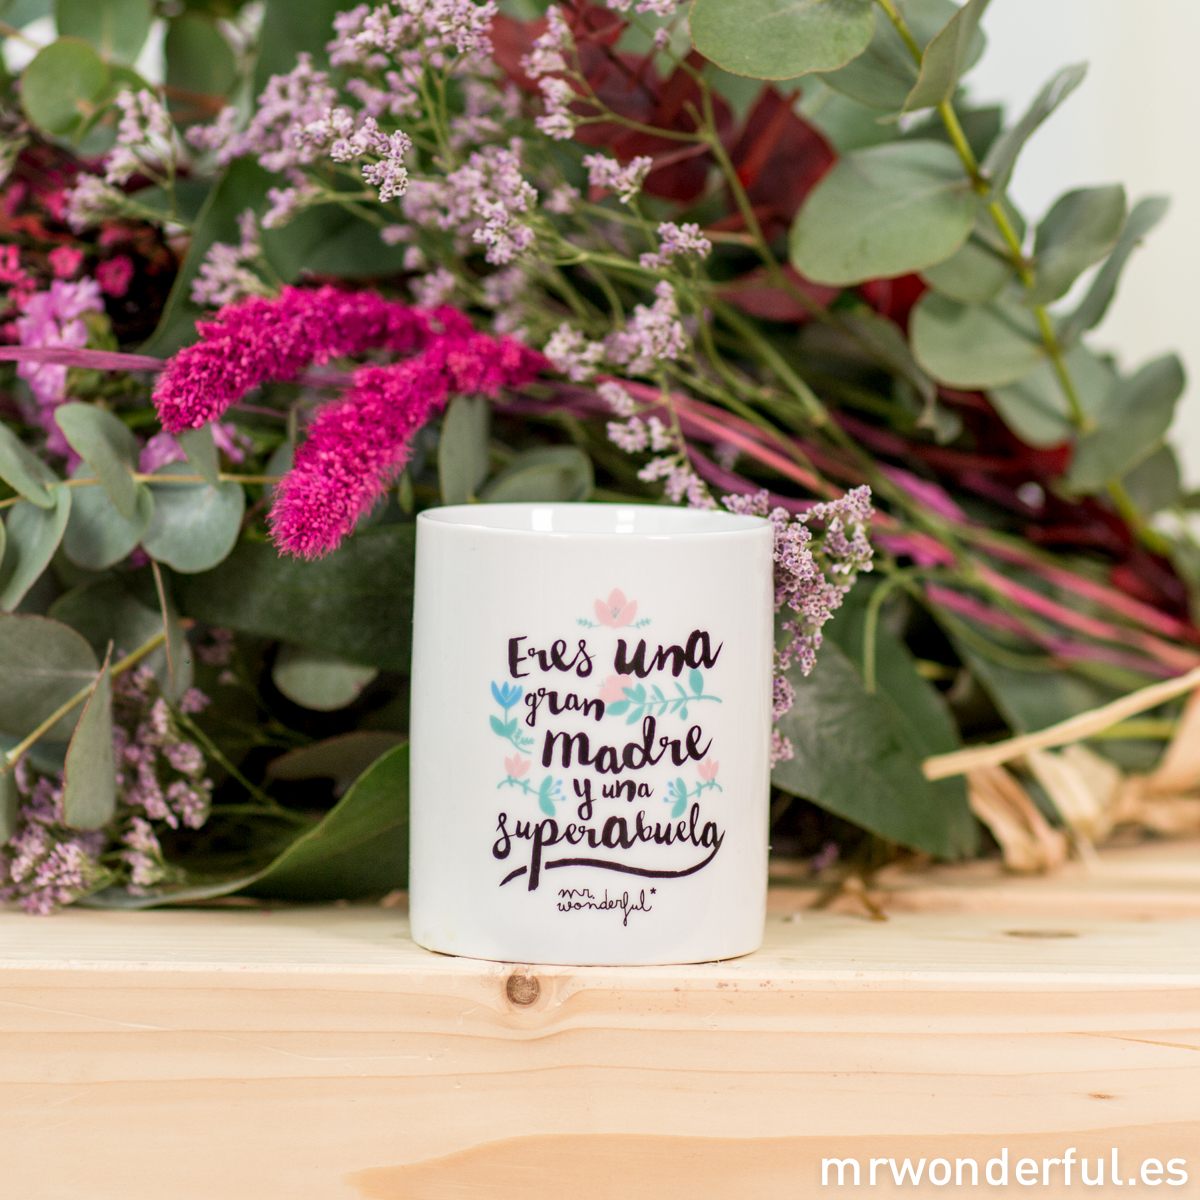 mrwonderful_8436547190379_WON-169A_Taza-gran-madre-superabuela-CAST-58